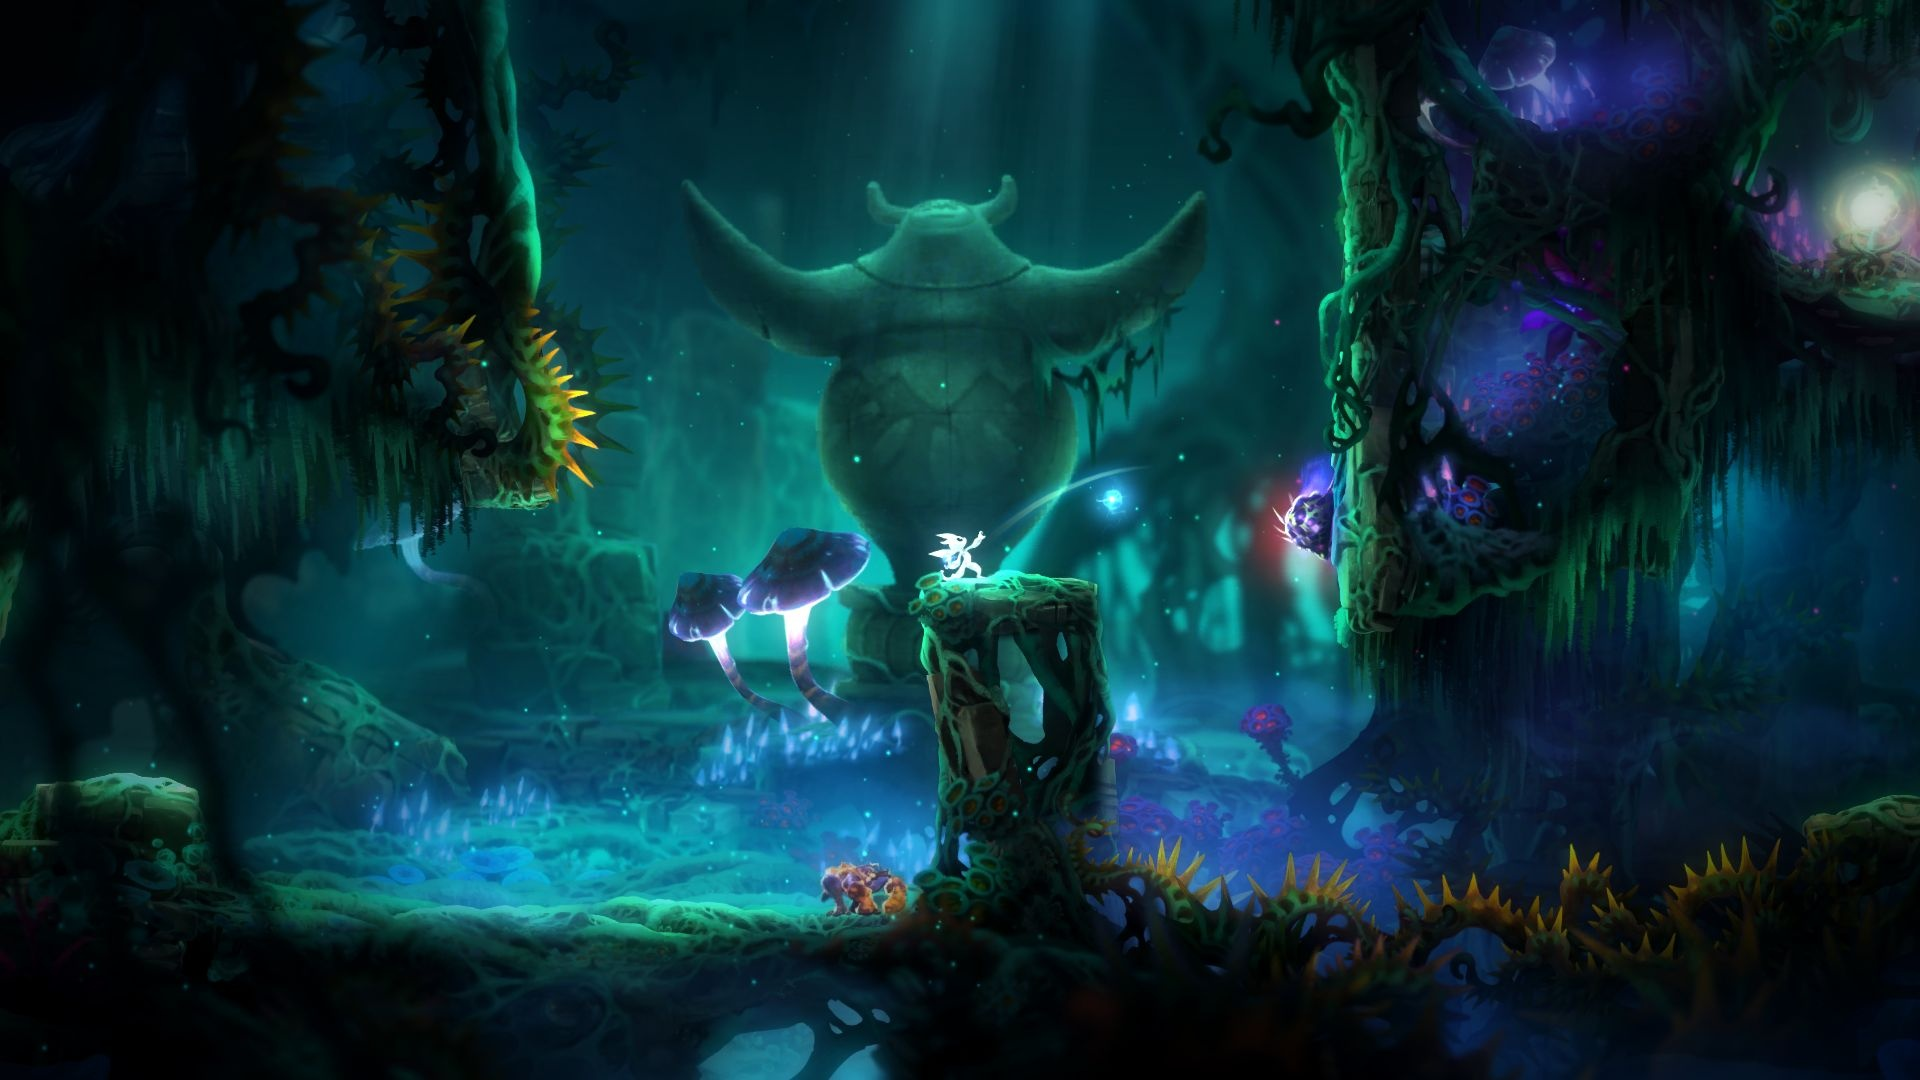 ori_and_the_blind_forest_definitive_edition_screenshot_20160301164816_3_original